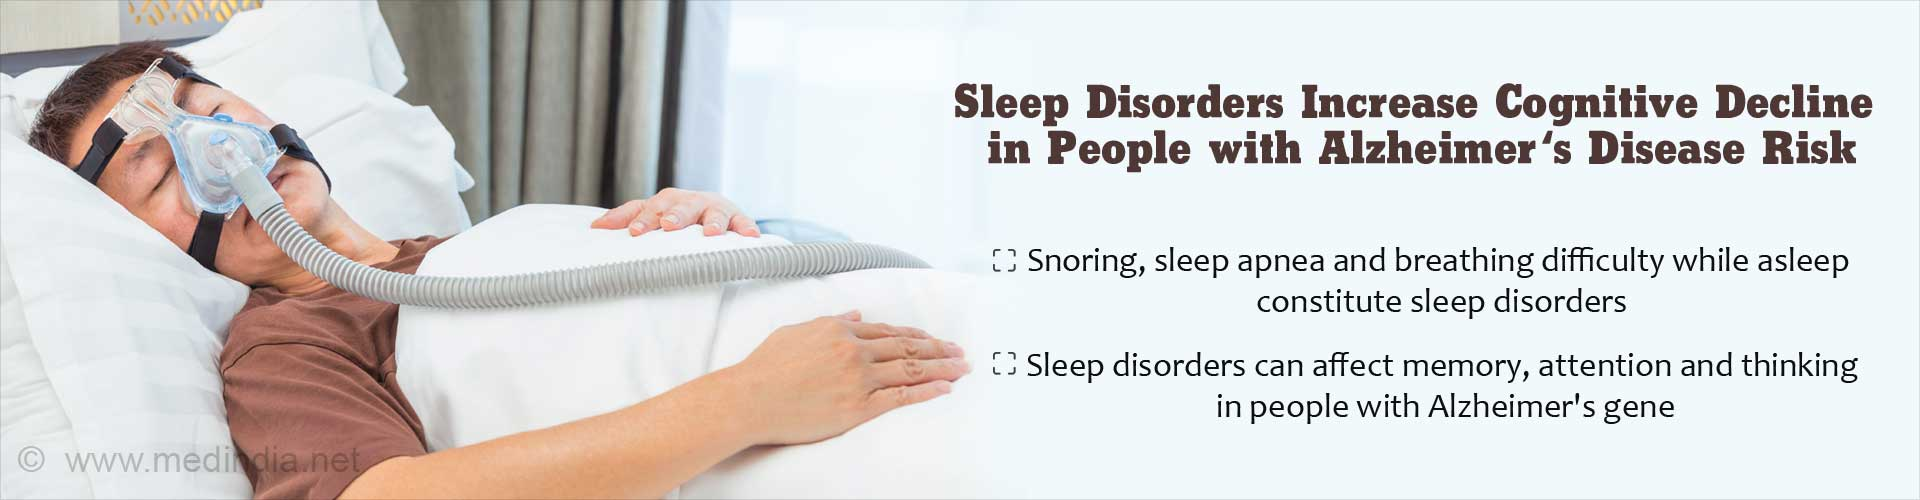 Sleep Disorders Increase Cognitive Decline in People with Alzheimer's Disease Risk